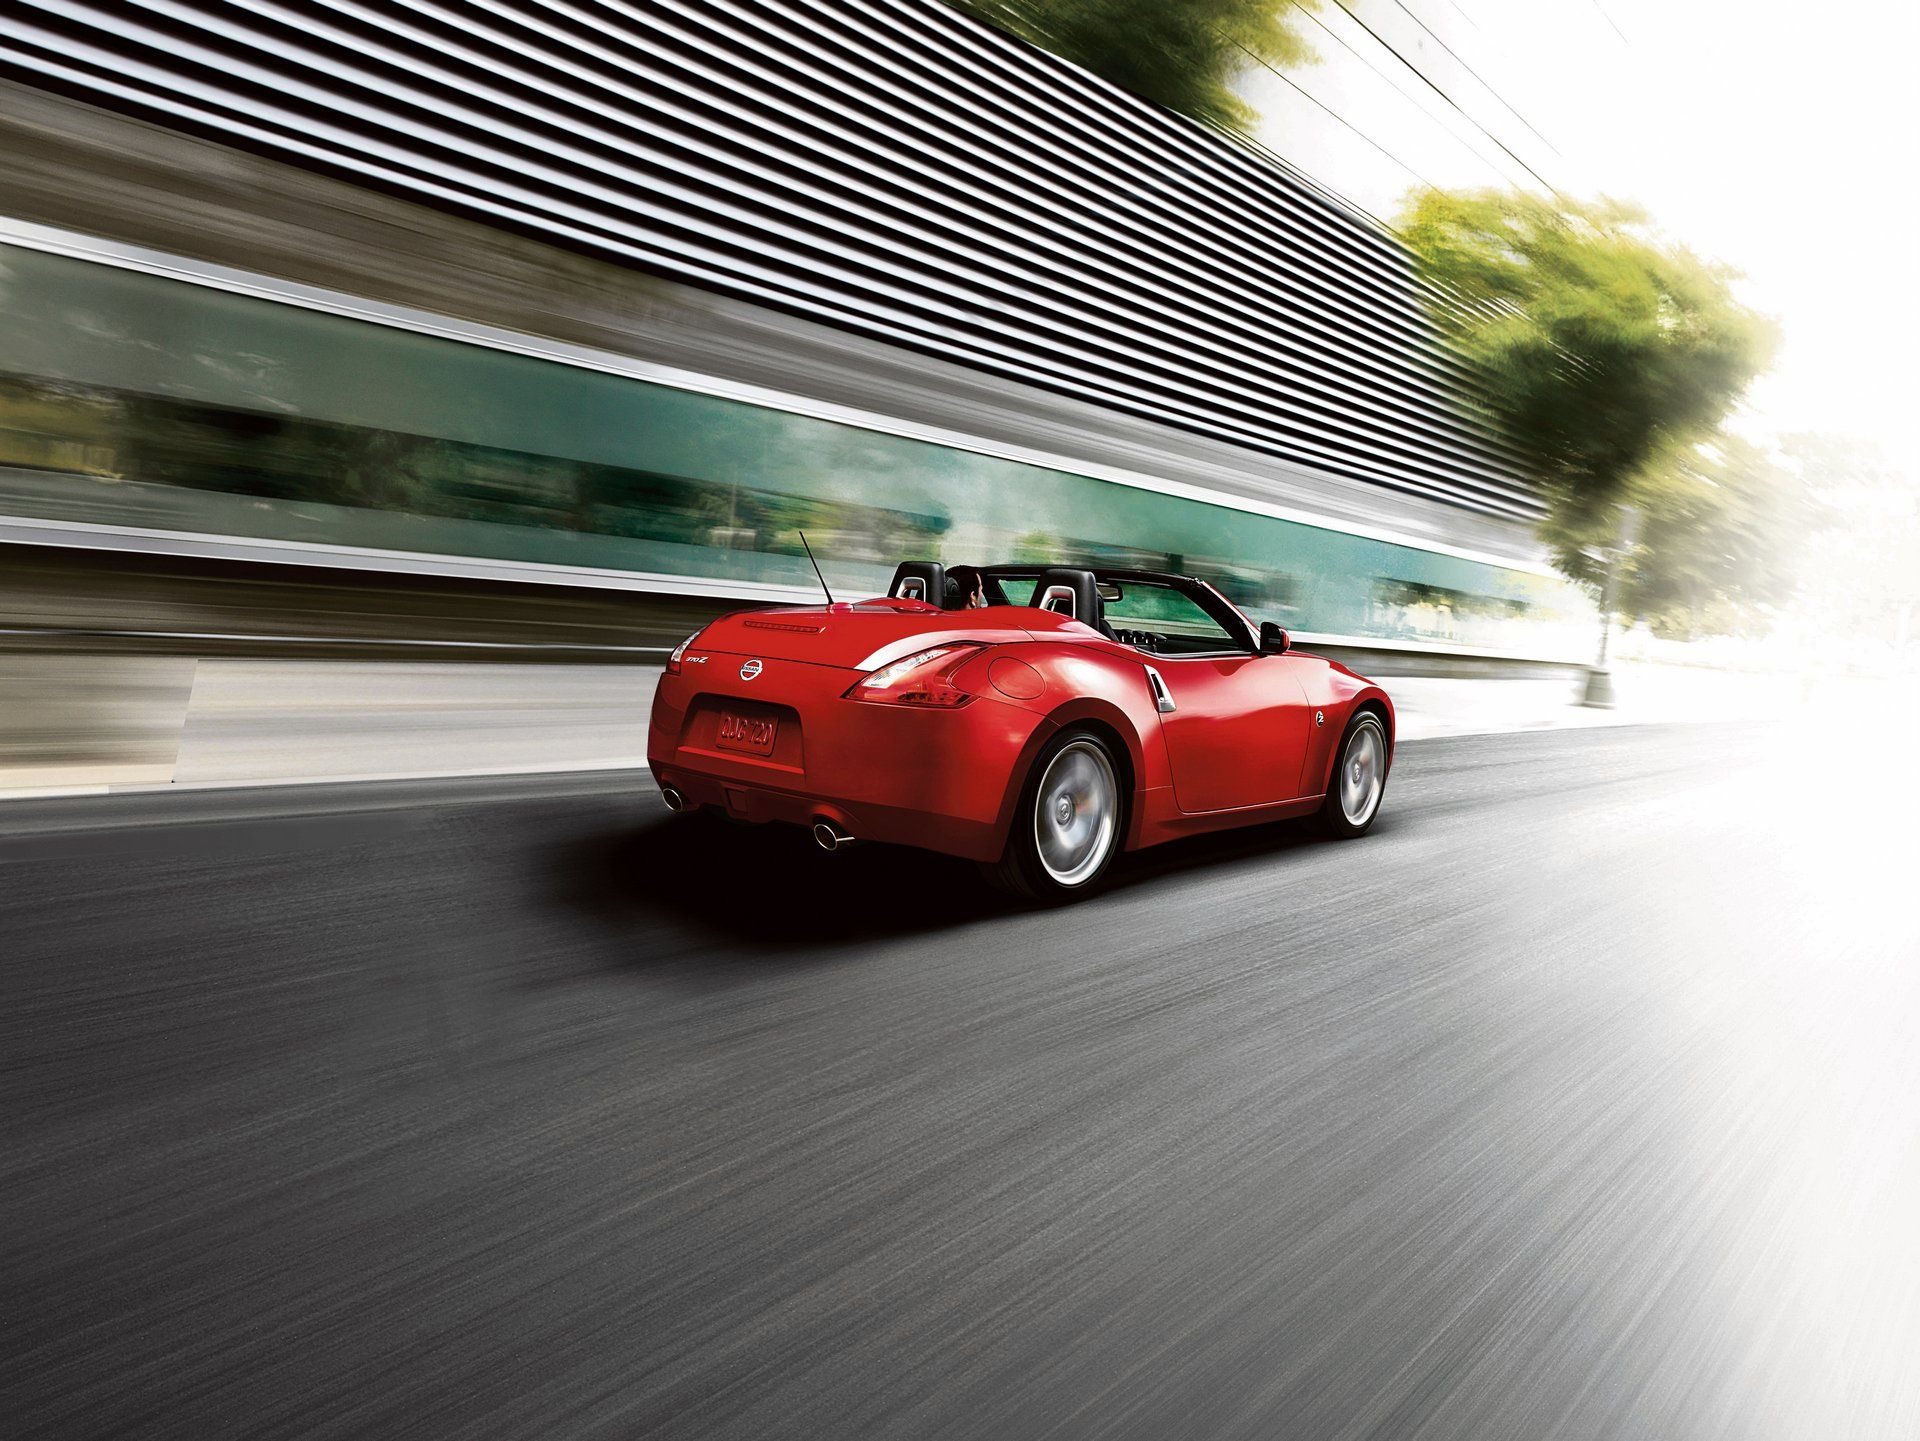 The 2016 nissan 370z roadster continues to offer unique design performance and value of the